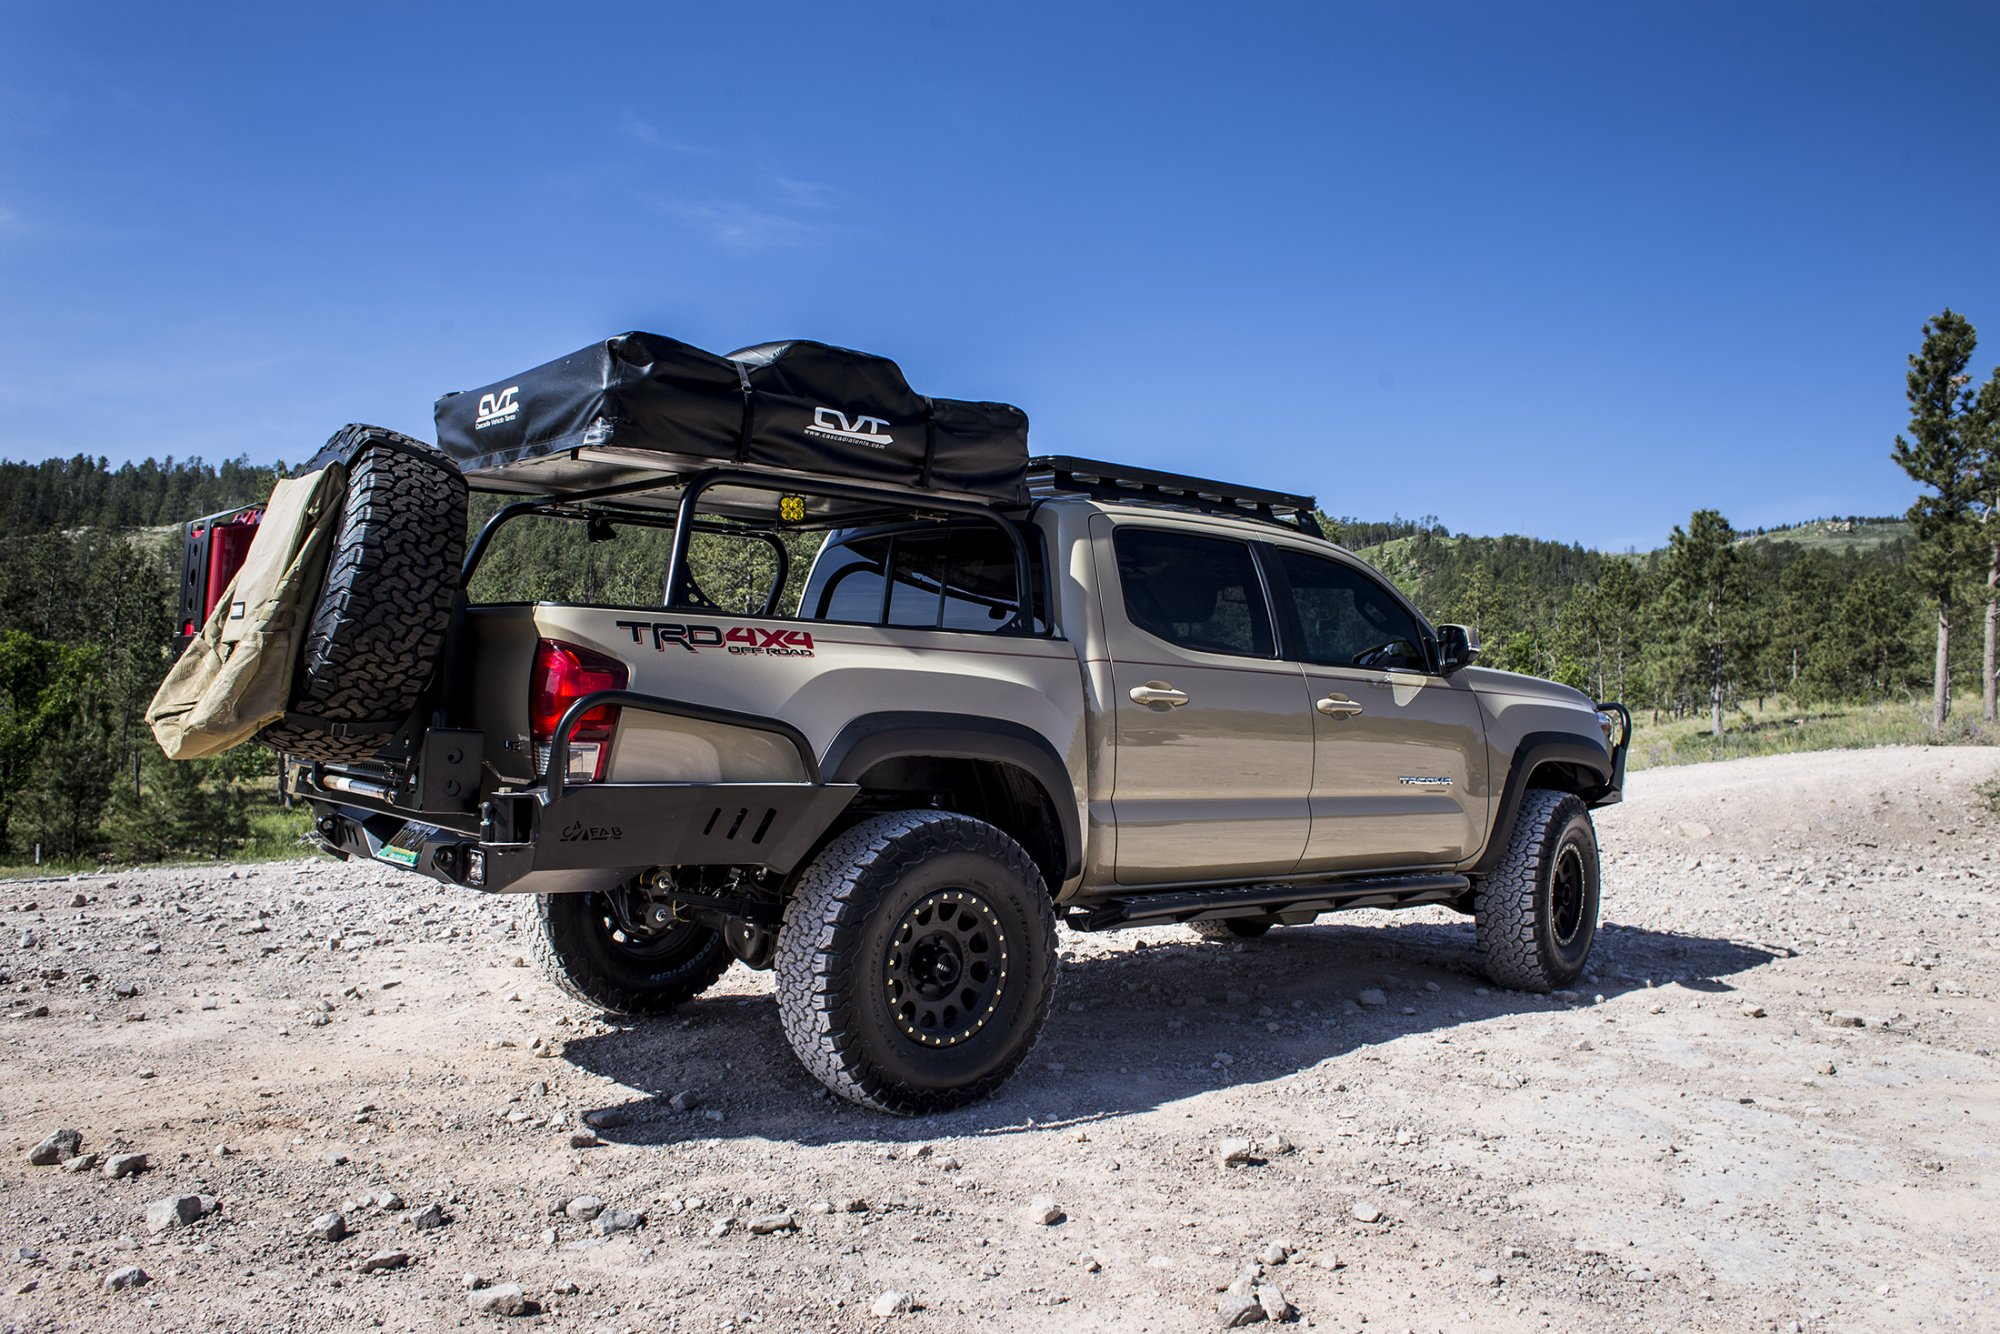 2016-Tacoma-3rd-Gen-Overland-Series-Rear-Bumper-High-Clearance-2.jpg